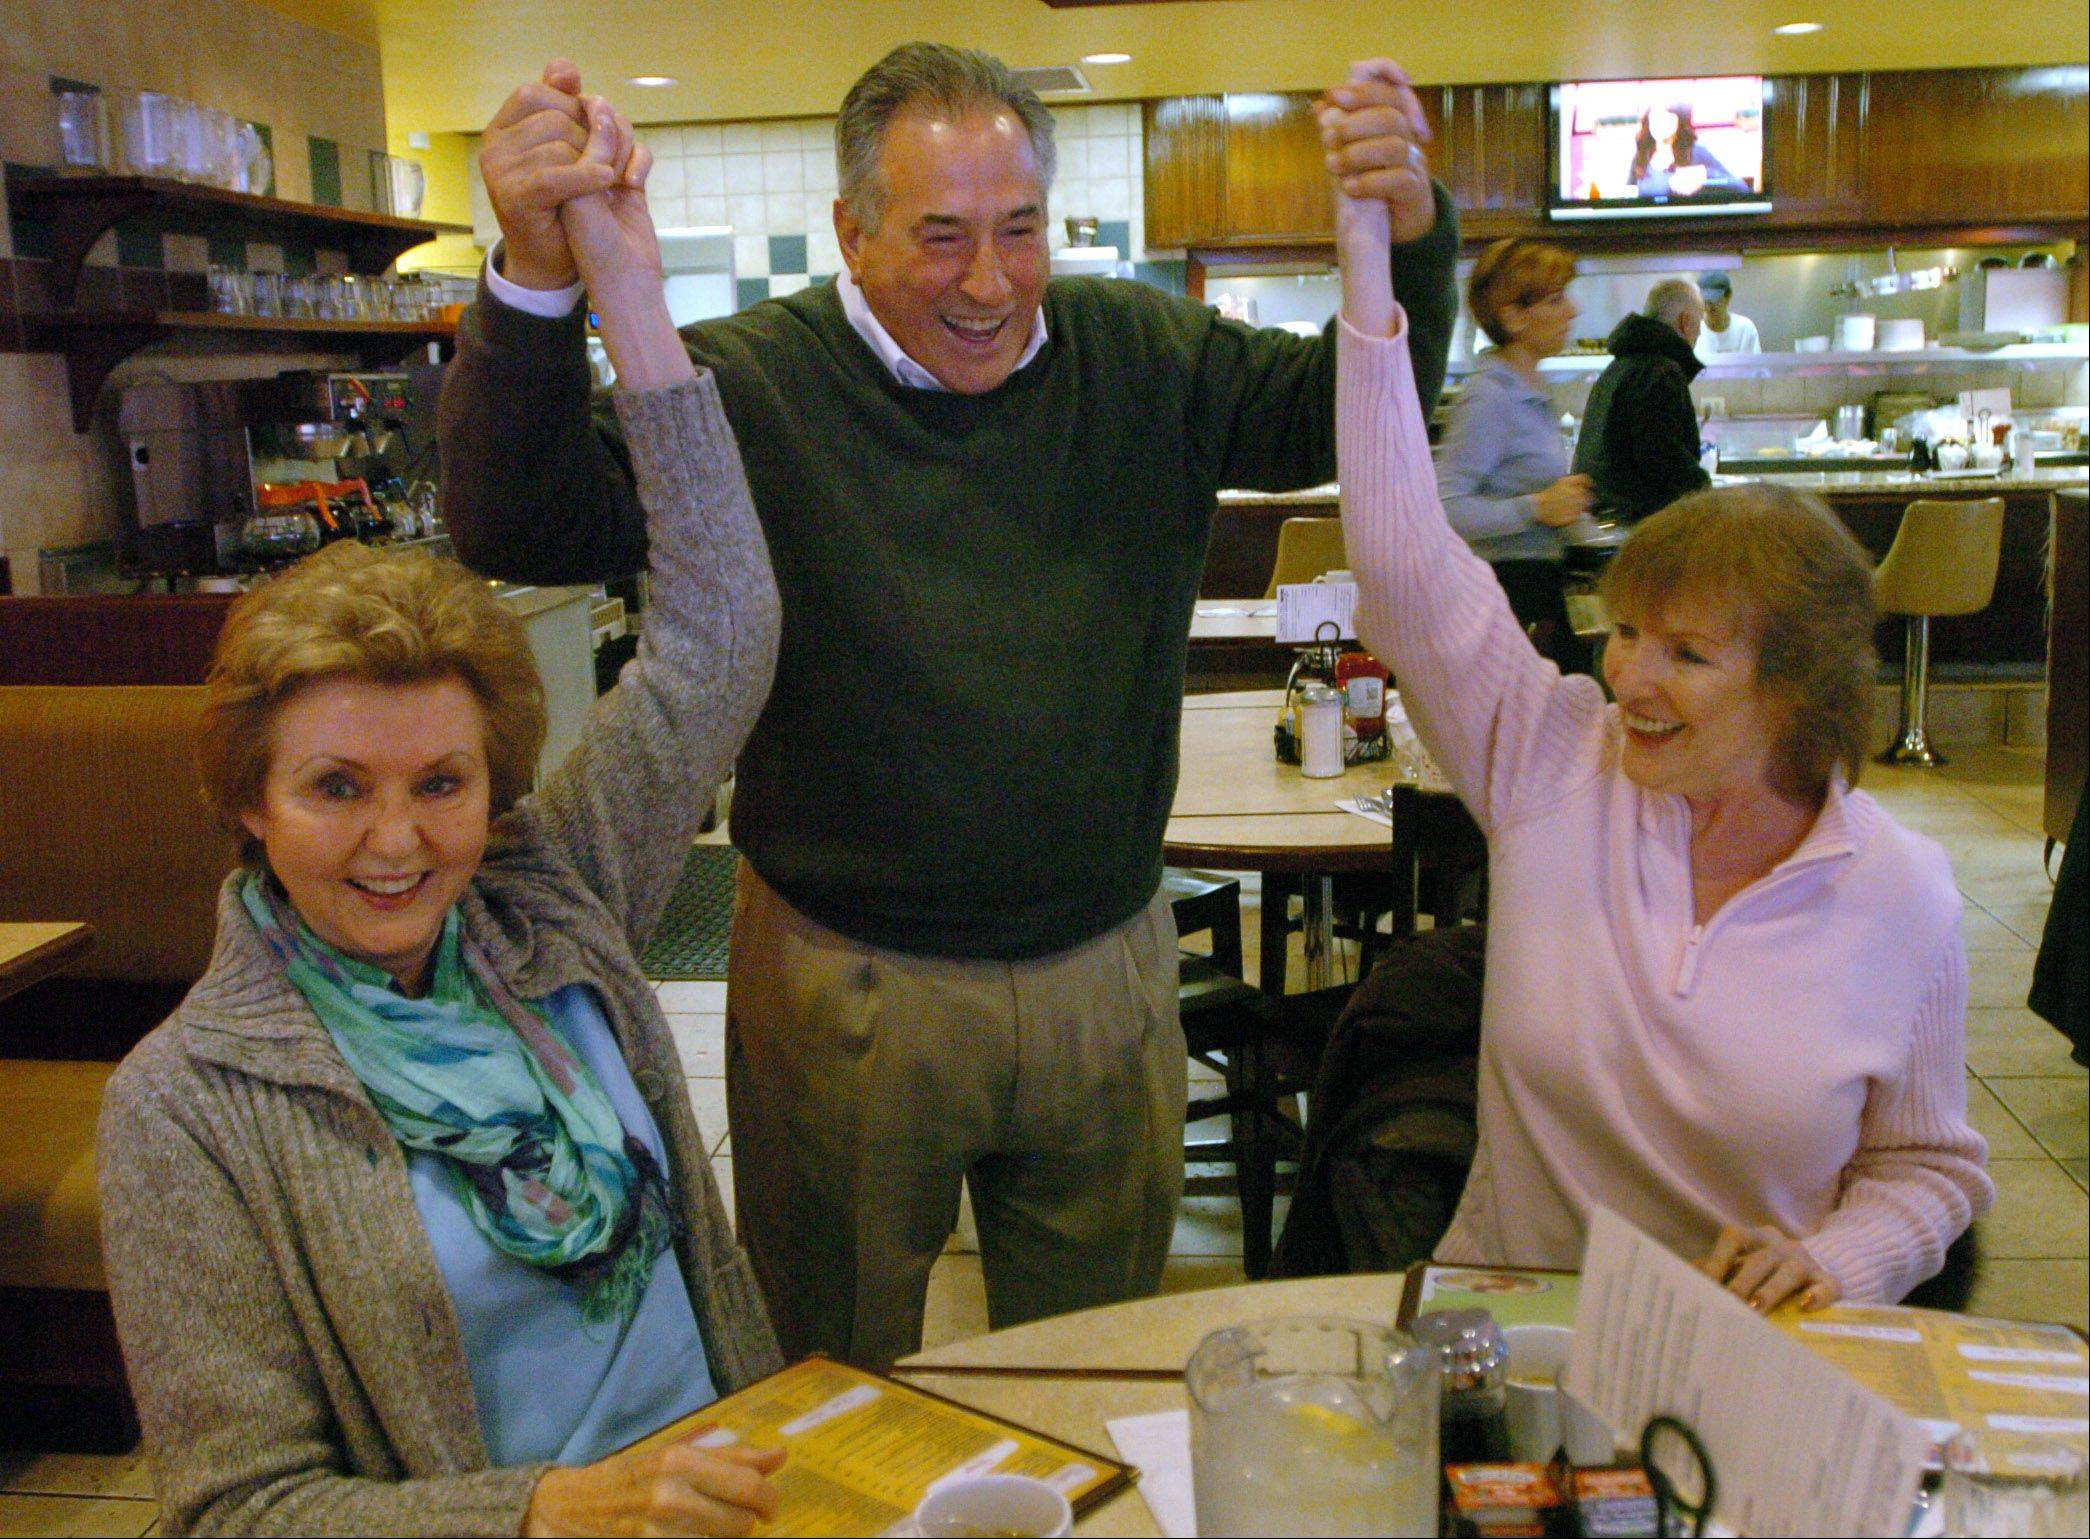 Des Plaines Mayor Marty Moylan thanks Mary Pat Monteleone, left, and Kathleen Fergus for their support, while visiting with patrons at the Sugar Bowl restaurant after winning the 55th State House District race in Tuesday's election.